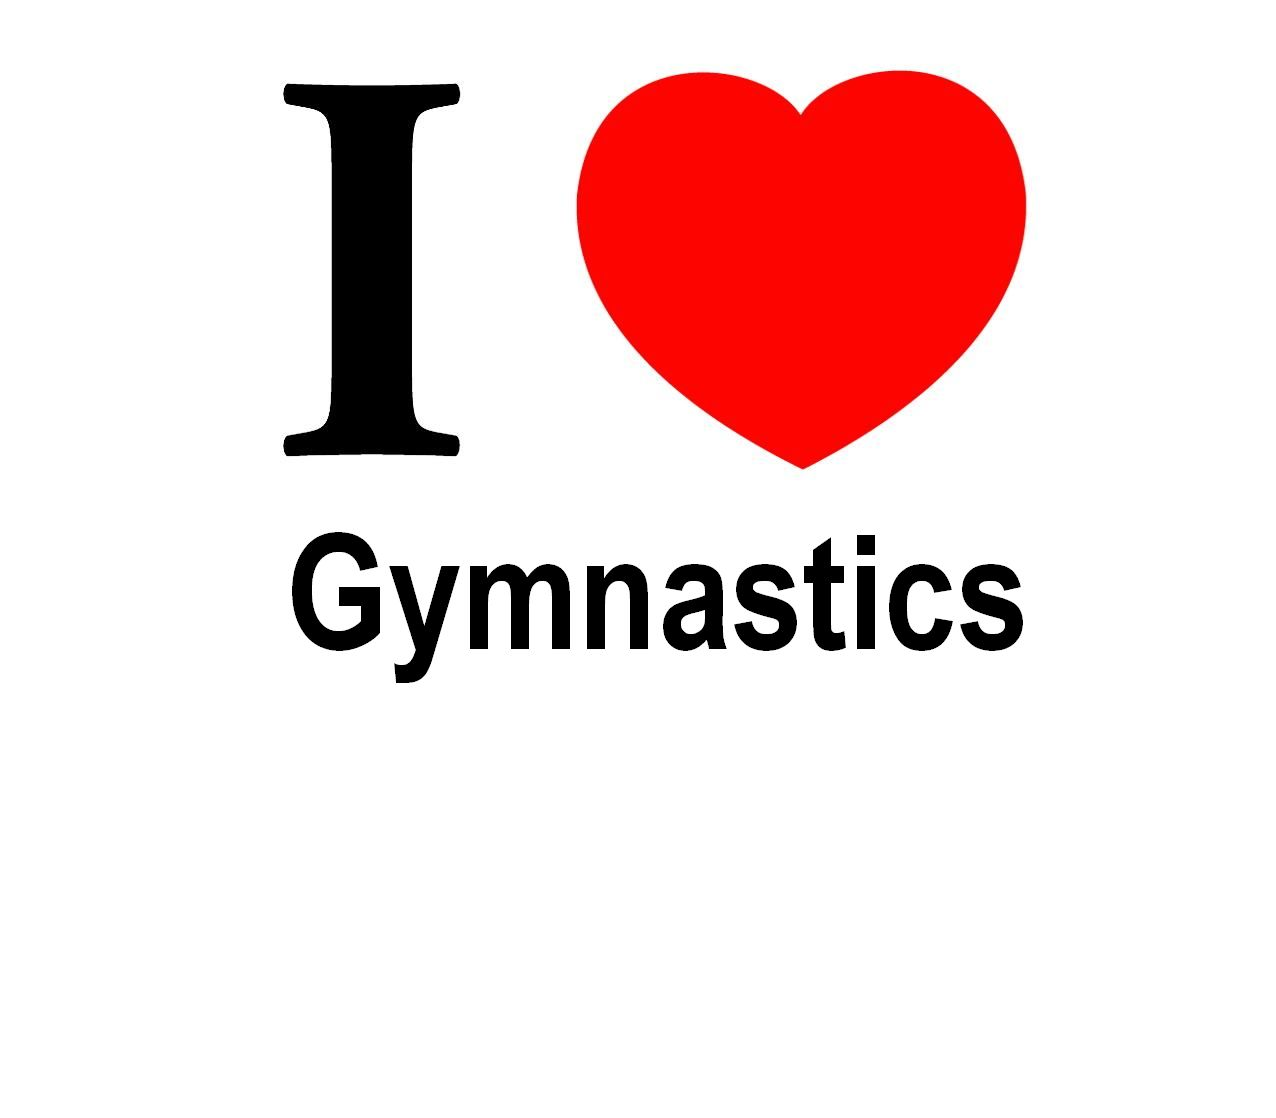 Short Gymnastics Quotes And Sayings: Tumbling Sayings And Quotes. QuotesGram